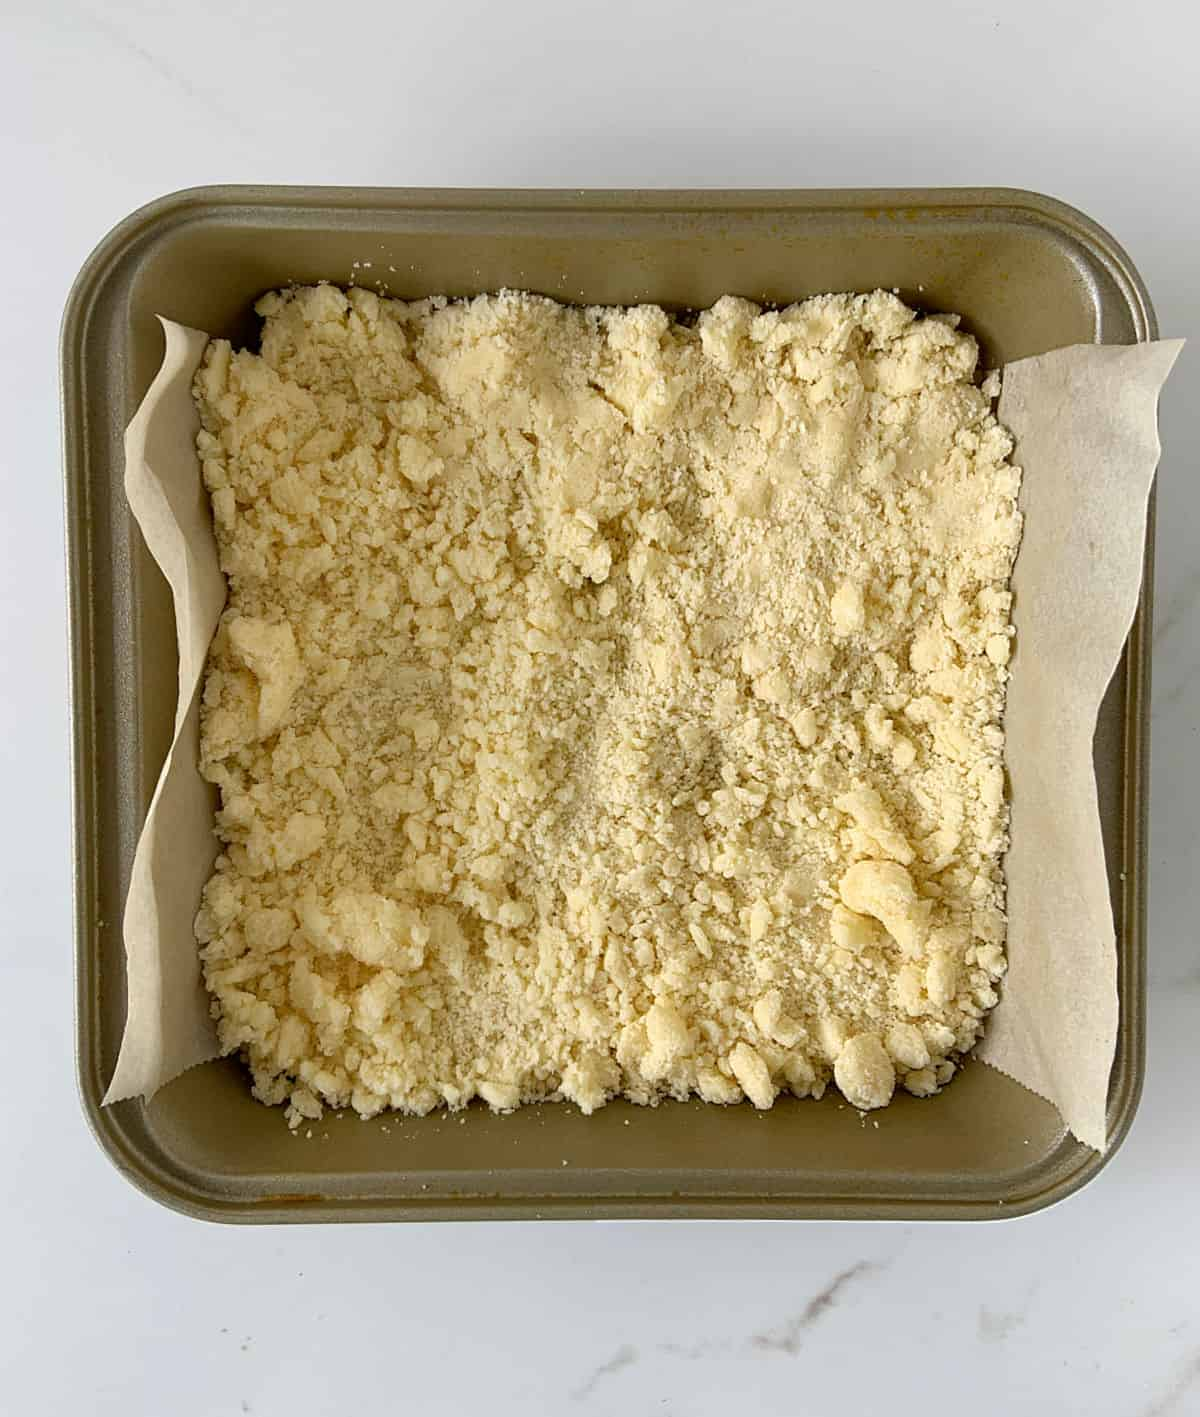 Crumbly mixture on bottom of square golden pan